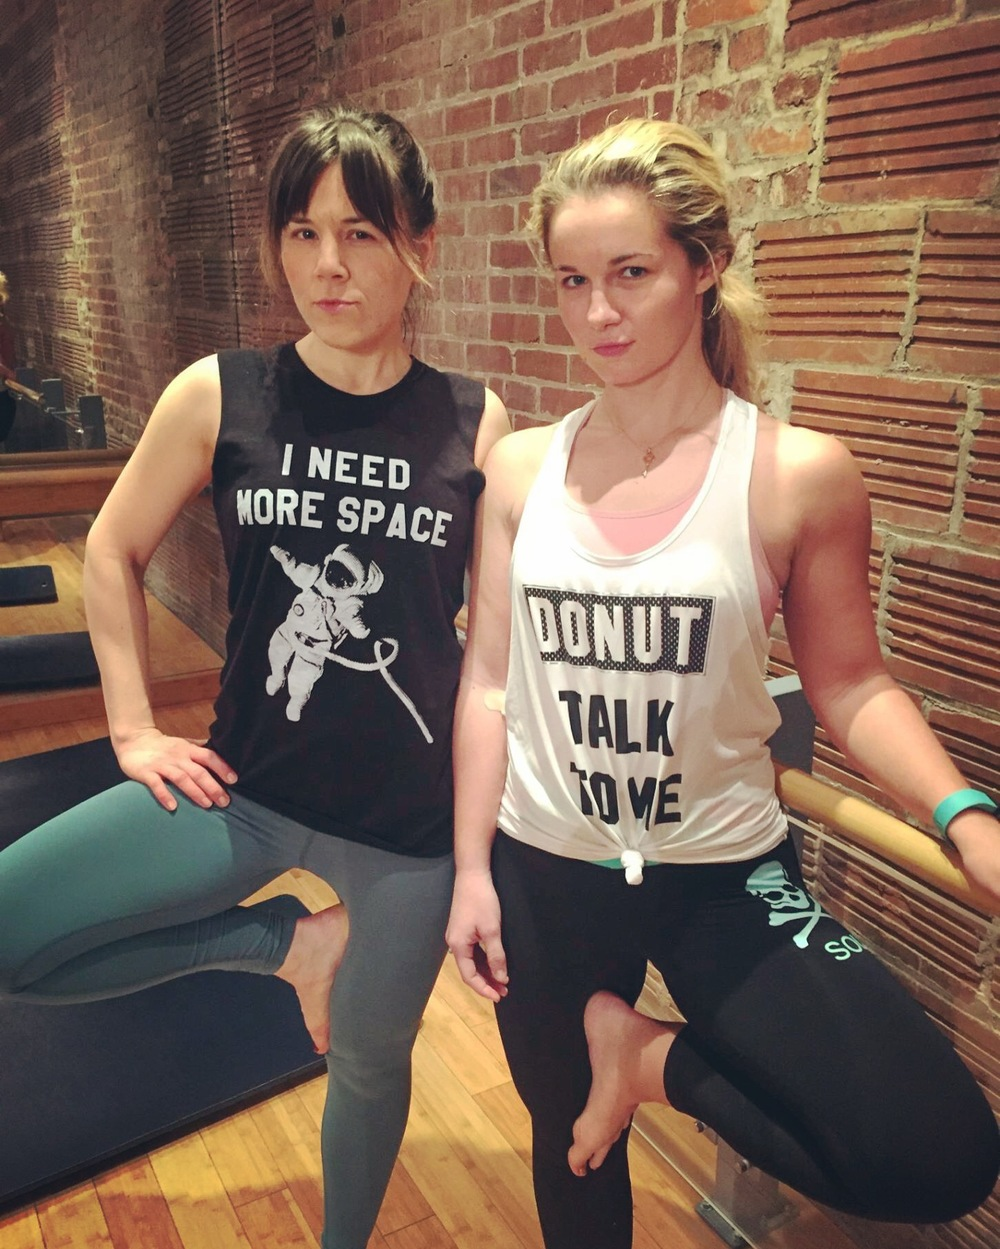 sassy as hell at barre3 (one of the benefits of being happy = energy to exercise!)